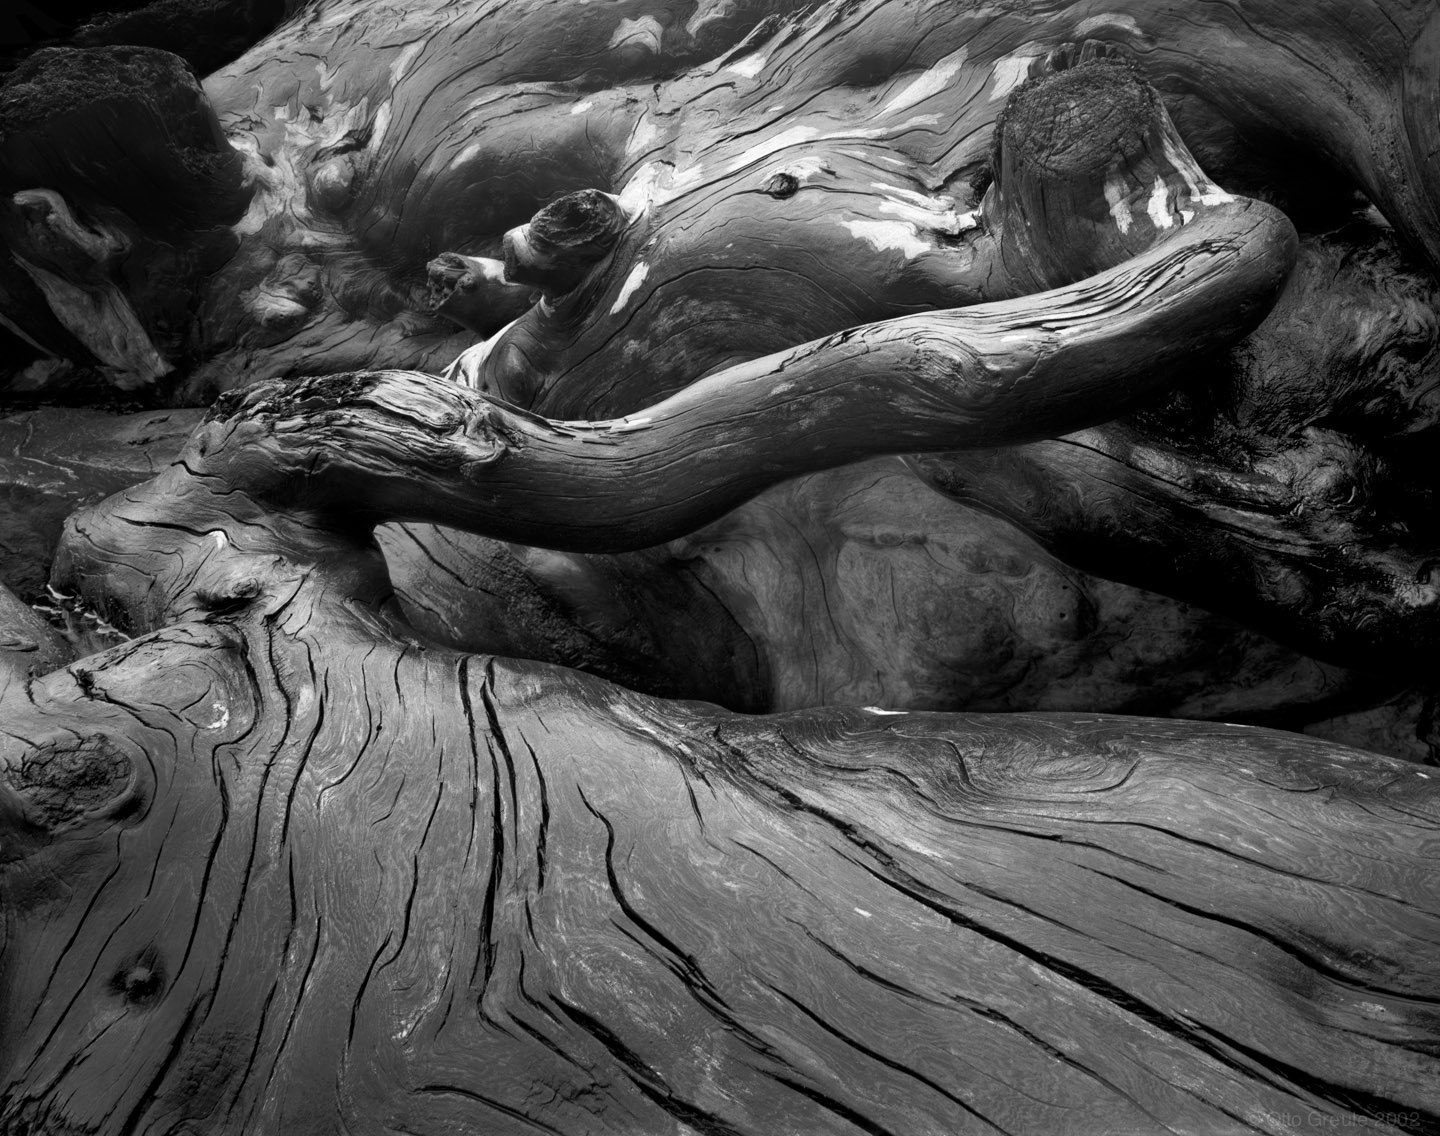 Driftwood, Olympic Wilderness Coast, WA.